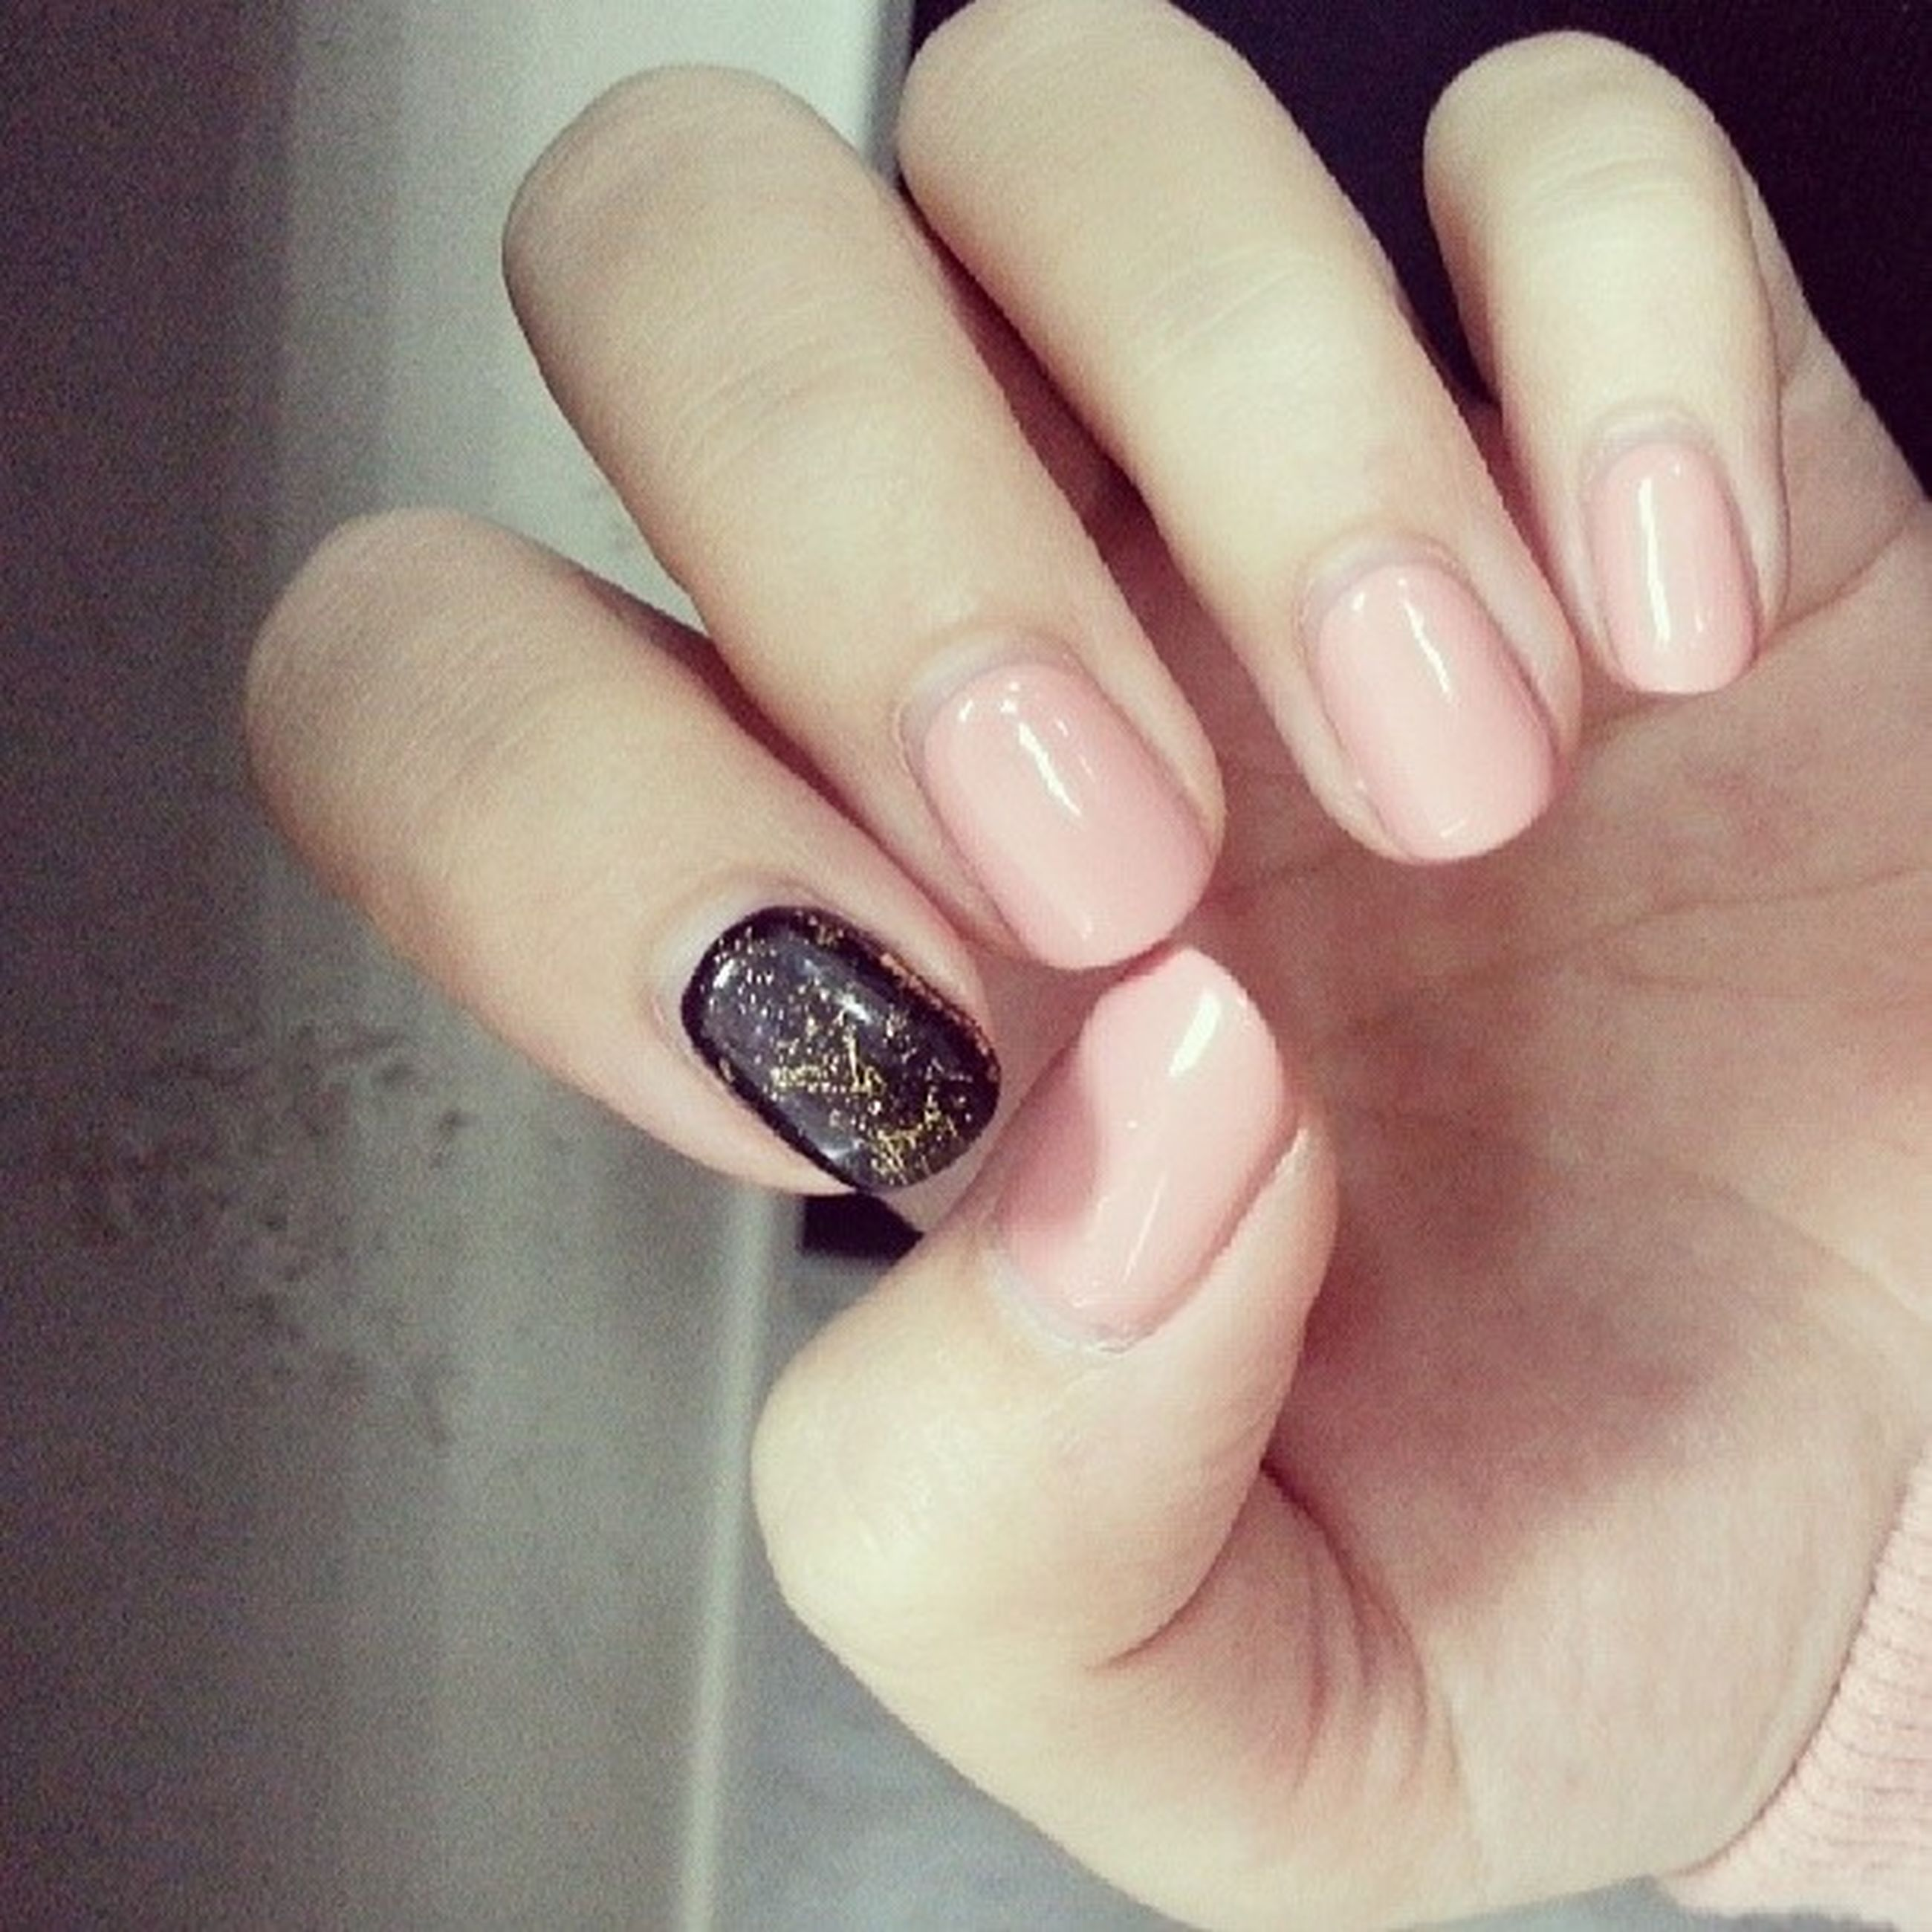 person, part of, human finger, holding, indoors, cropped, close-up, personal perspective, unrecognizable person, high angle view, ring, lifestyles, nail polish, food and drink, showing, palm